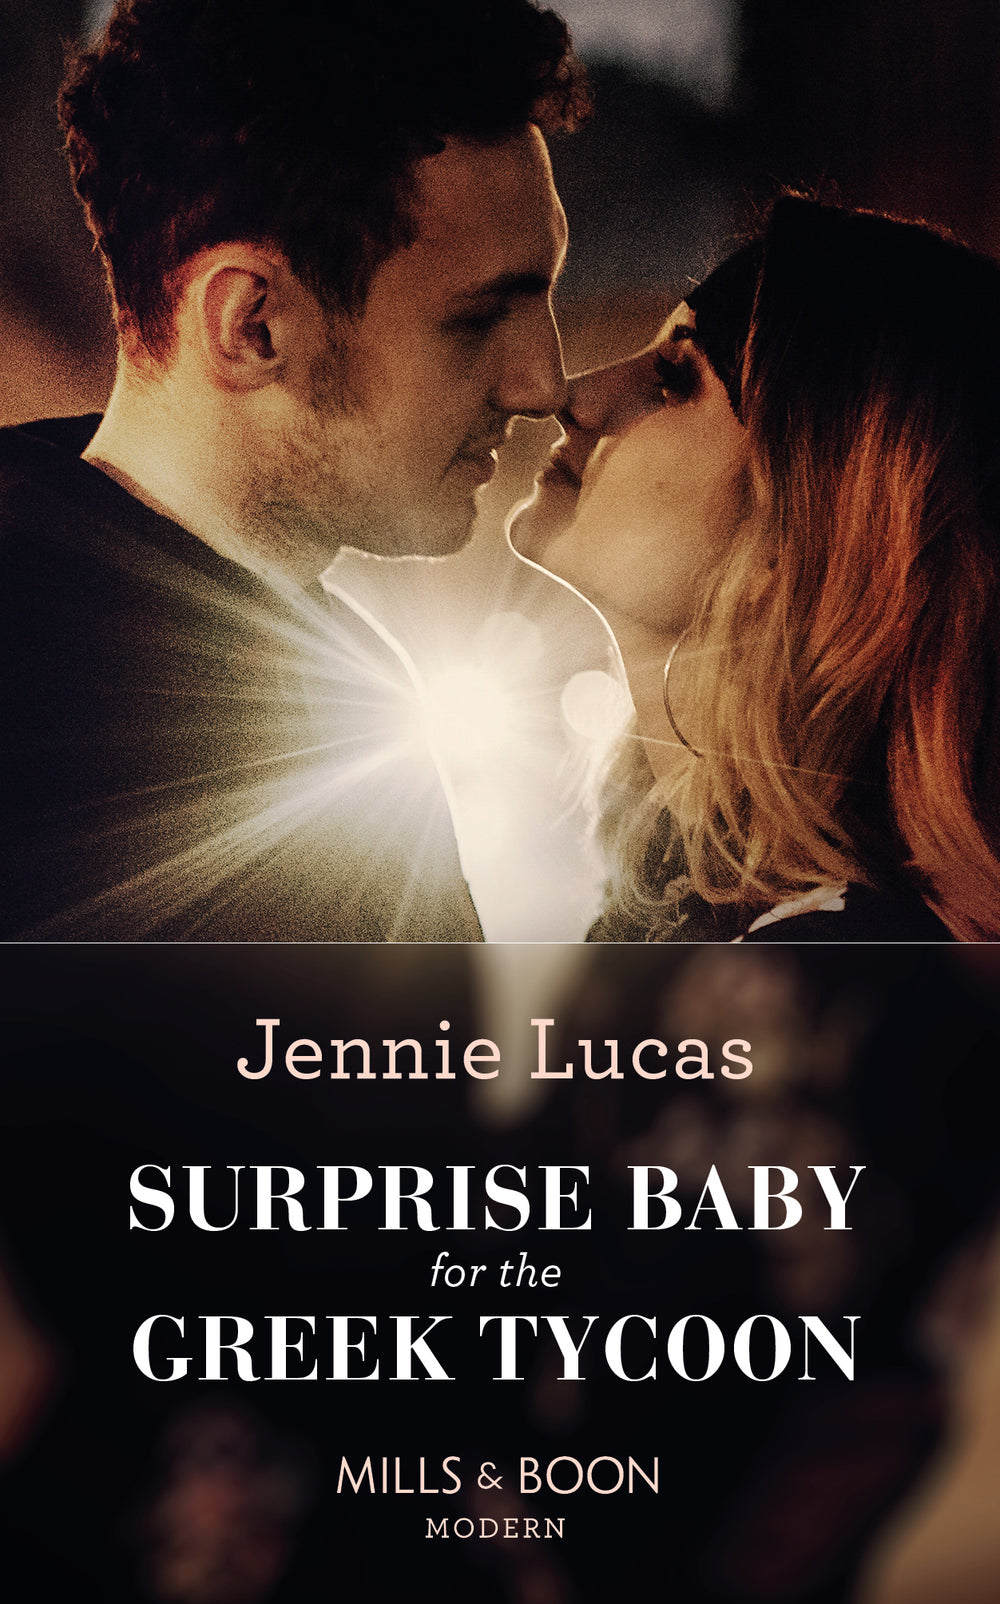 Surprise Baby for the Greek Tycoon - Chapter 18